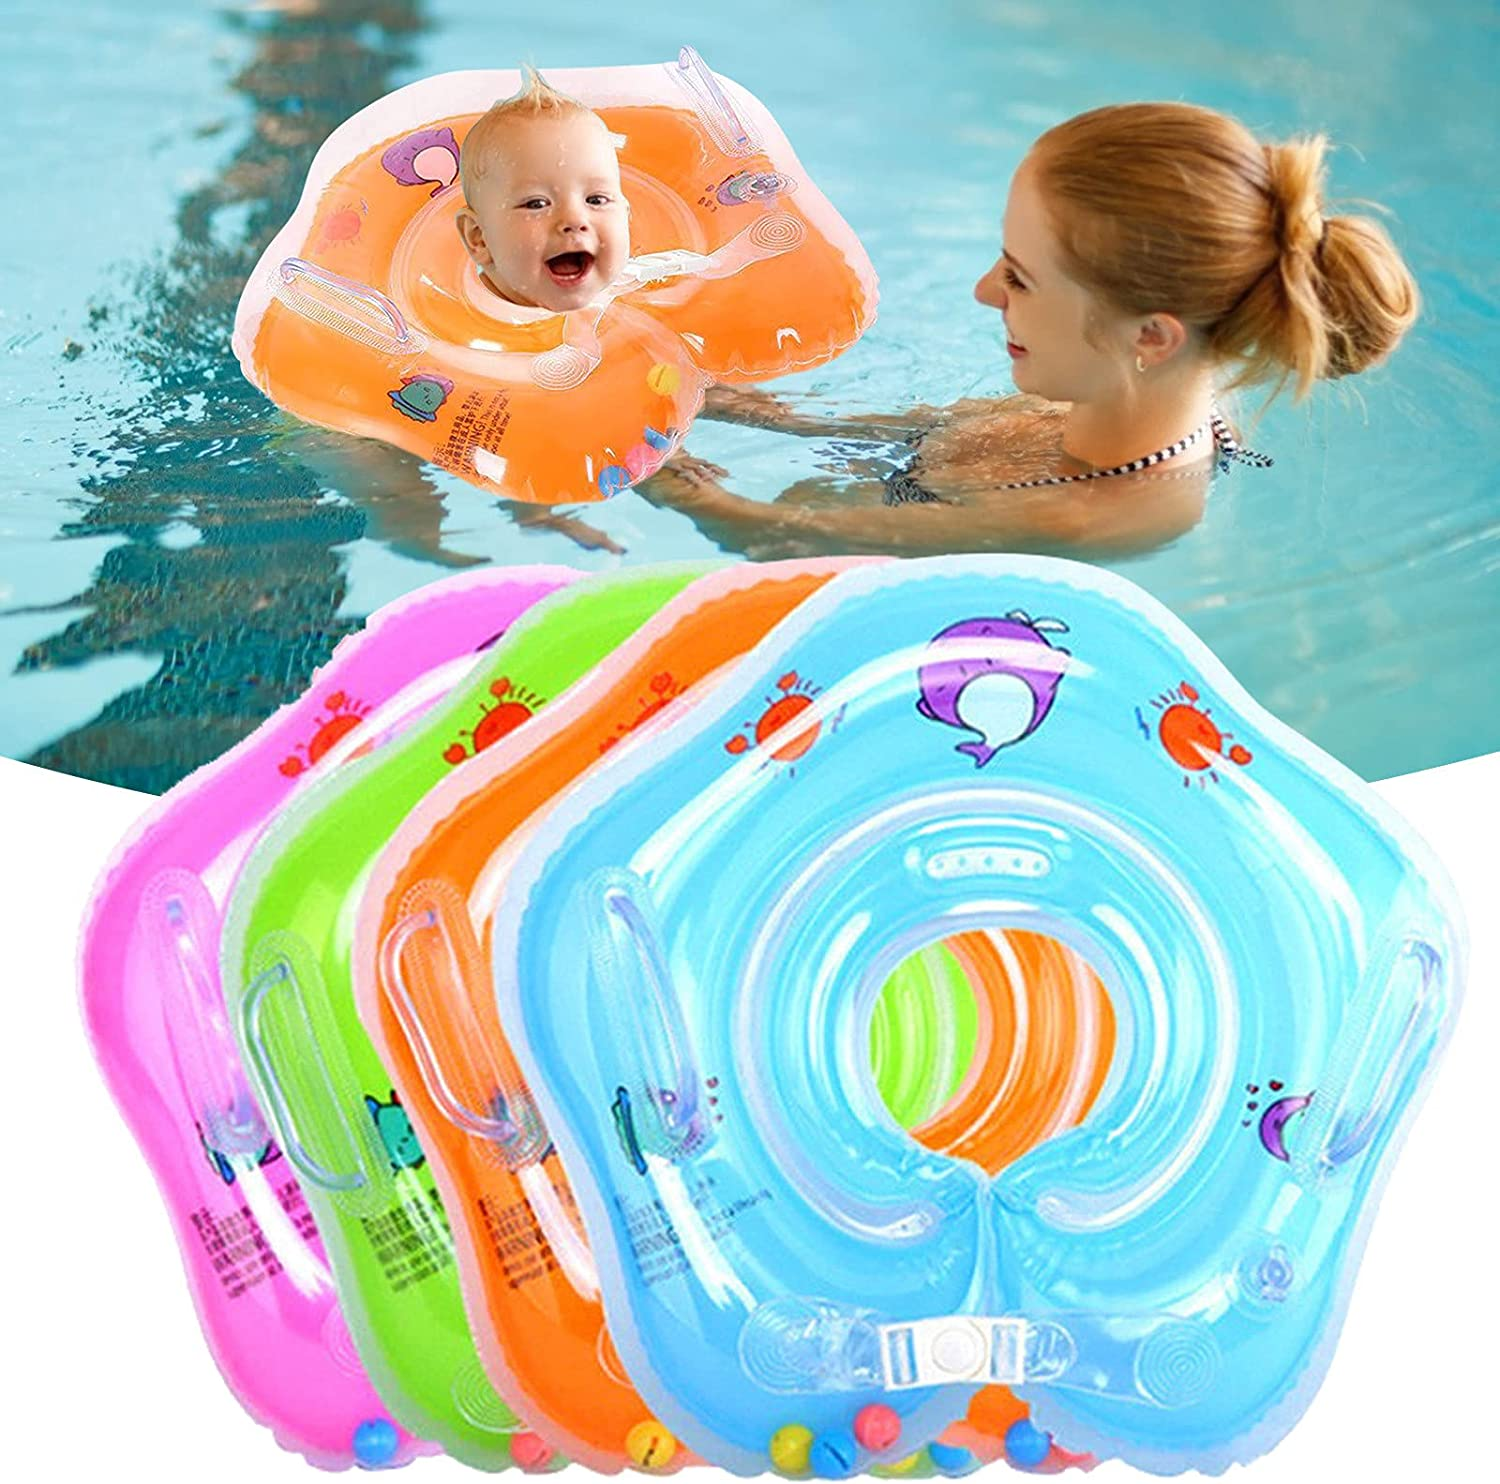 coersd Baby Swimming Ring Floats Double Rare Seat Airbag with Miami Mall Safety